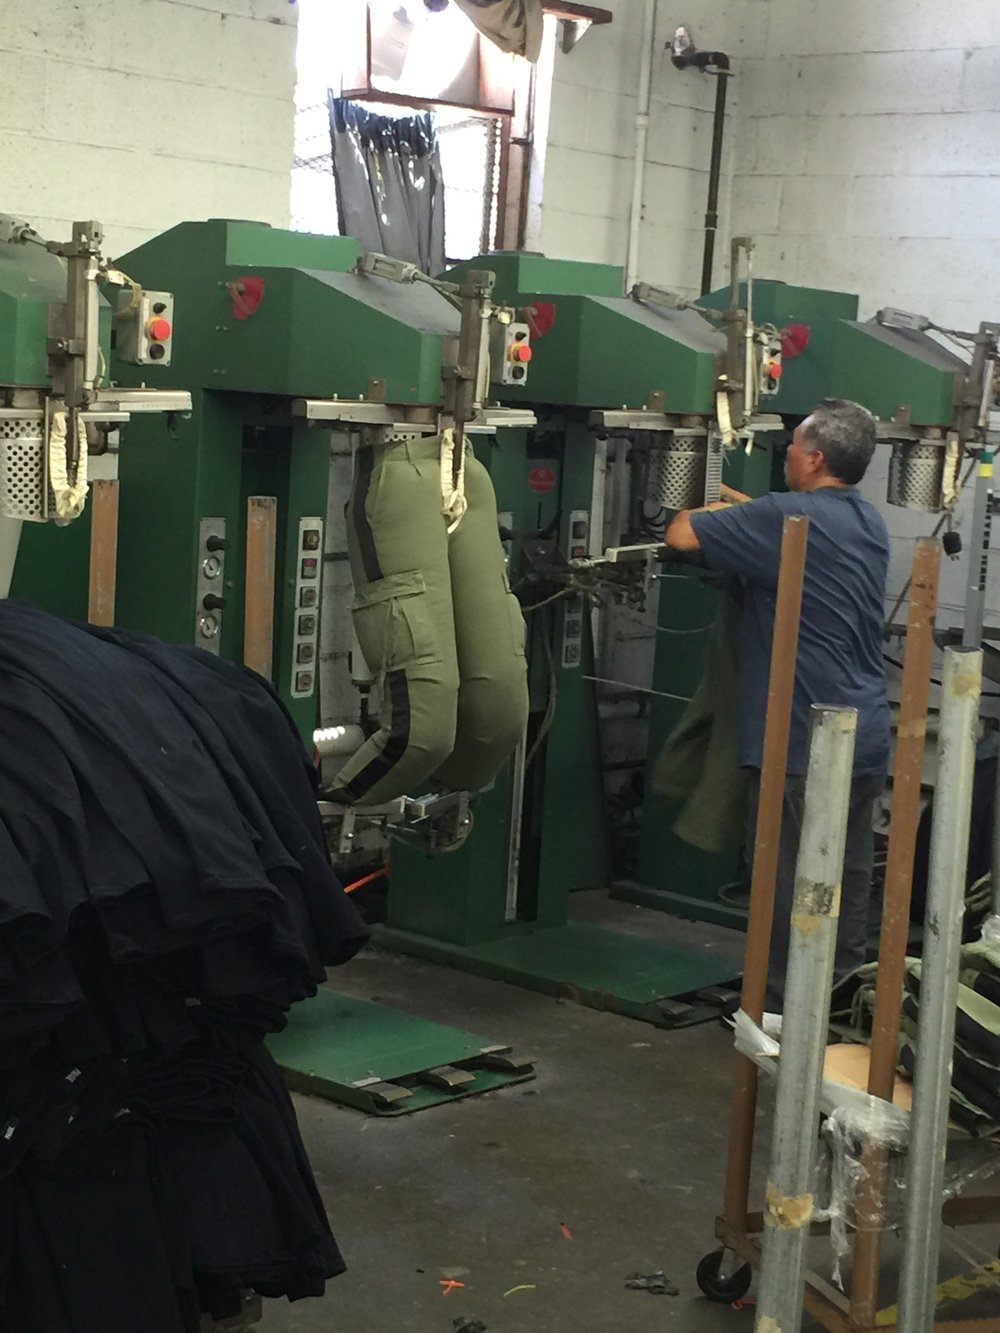 This is an image of what happens towards the end of the process, where they put the pants on the machine for a soft press before they fold and finish the pants.  There are many different ways to wash, but typically, the process is:  1.       Dry process - Handsand  2.       Spray potassium for fading and tinting  3.       Grinding adding holes, etc.  4.       Stone Wash – adding silicone softener if needed  5.       Dry  6.       Add resin which secures the color  7.       Put it through the oven to bake the resin  8.       Finish  These steps can go in various orders depending on what wash you'd like to achieve